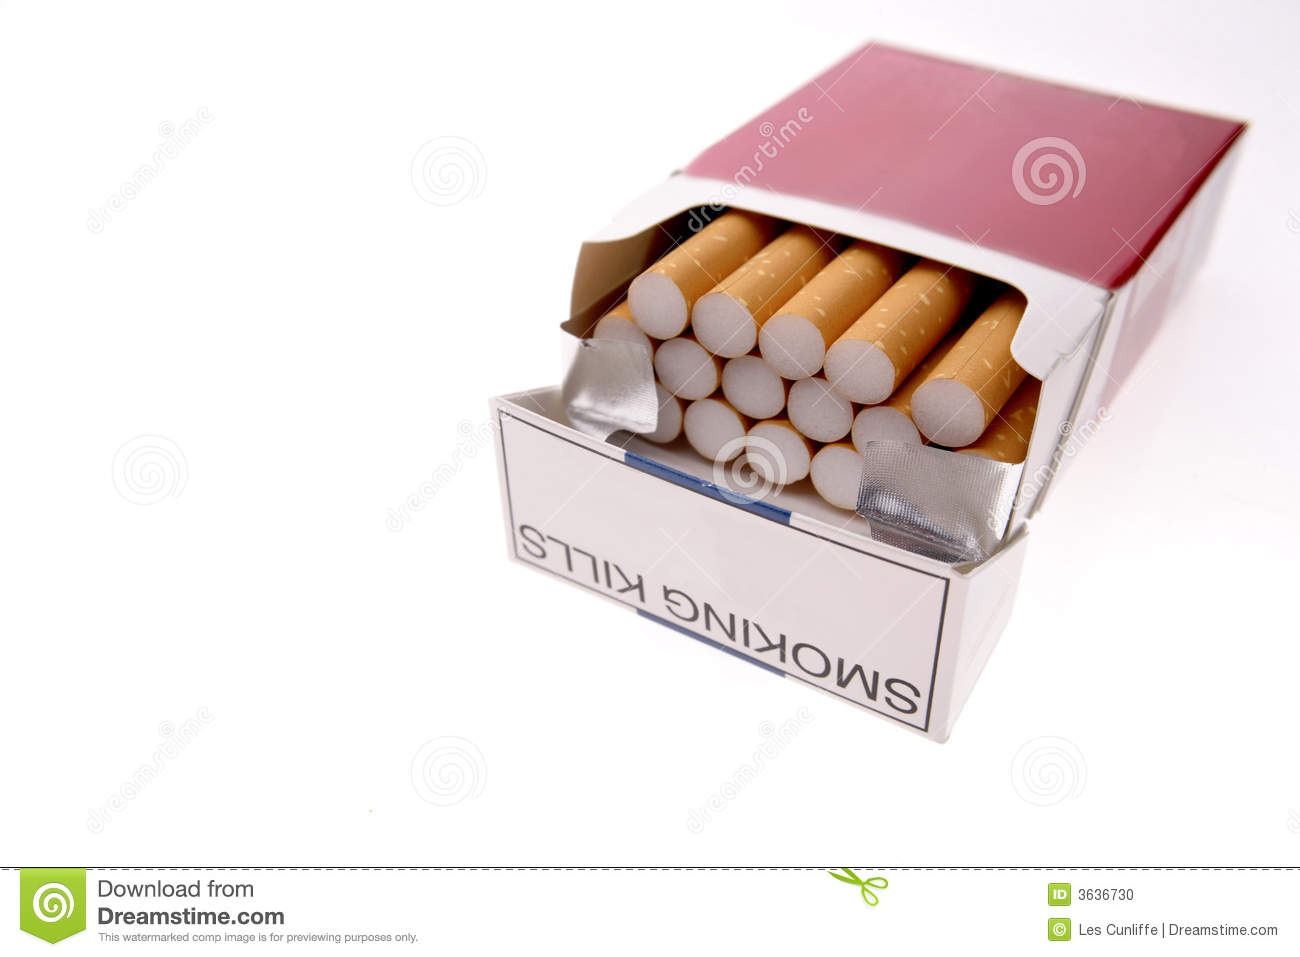 how to pack a pack of cigarettes